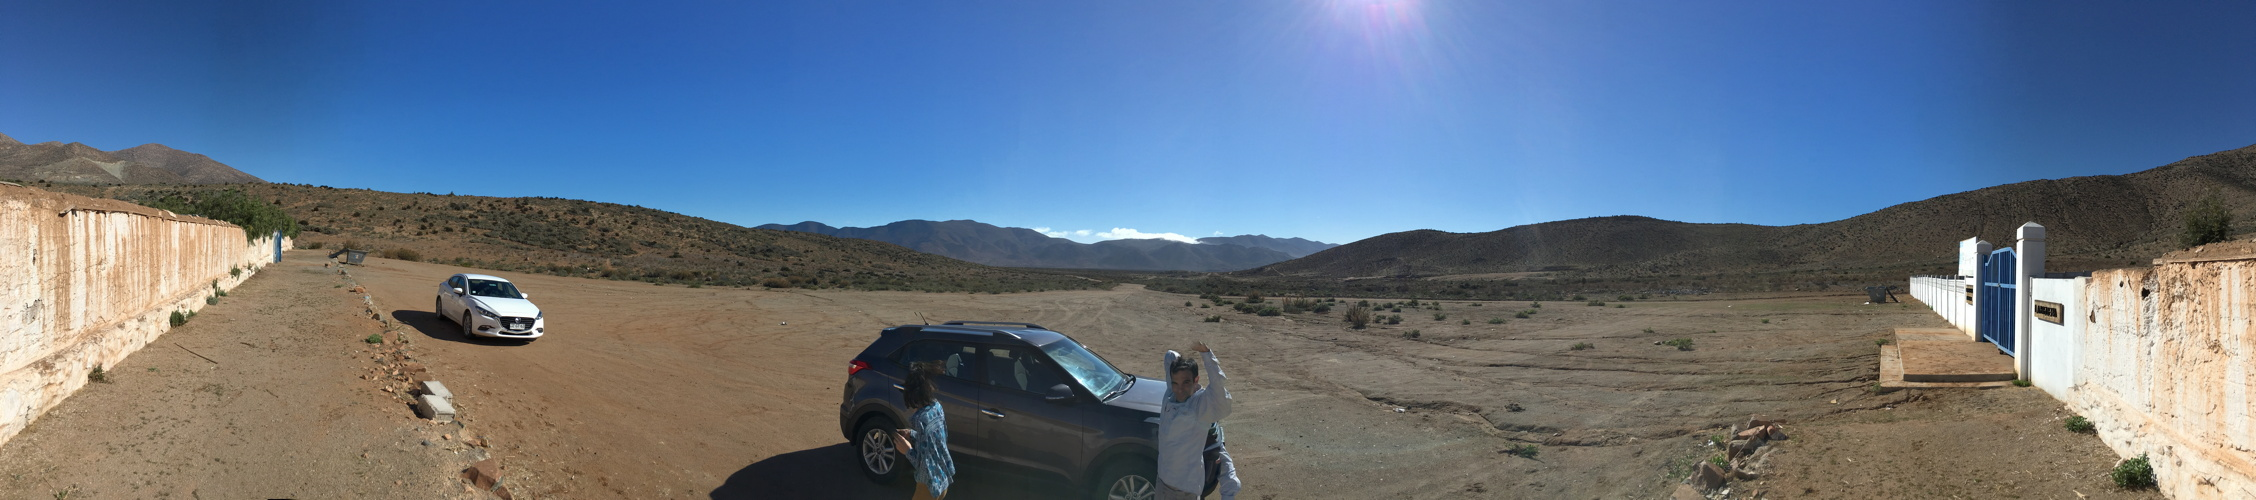 180 Degree Panoramic View La Higuera Total Solar Eclipse 2019